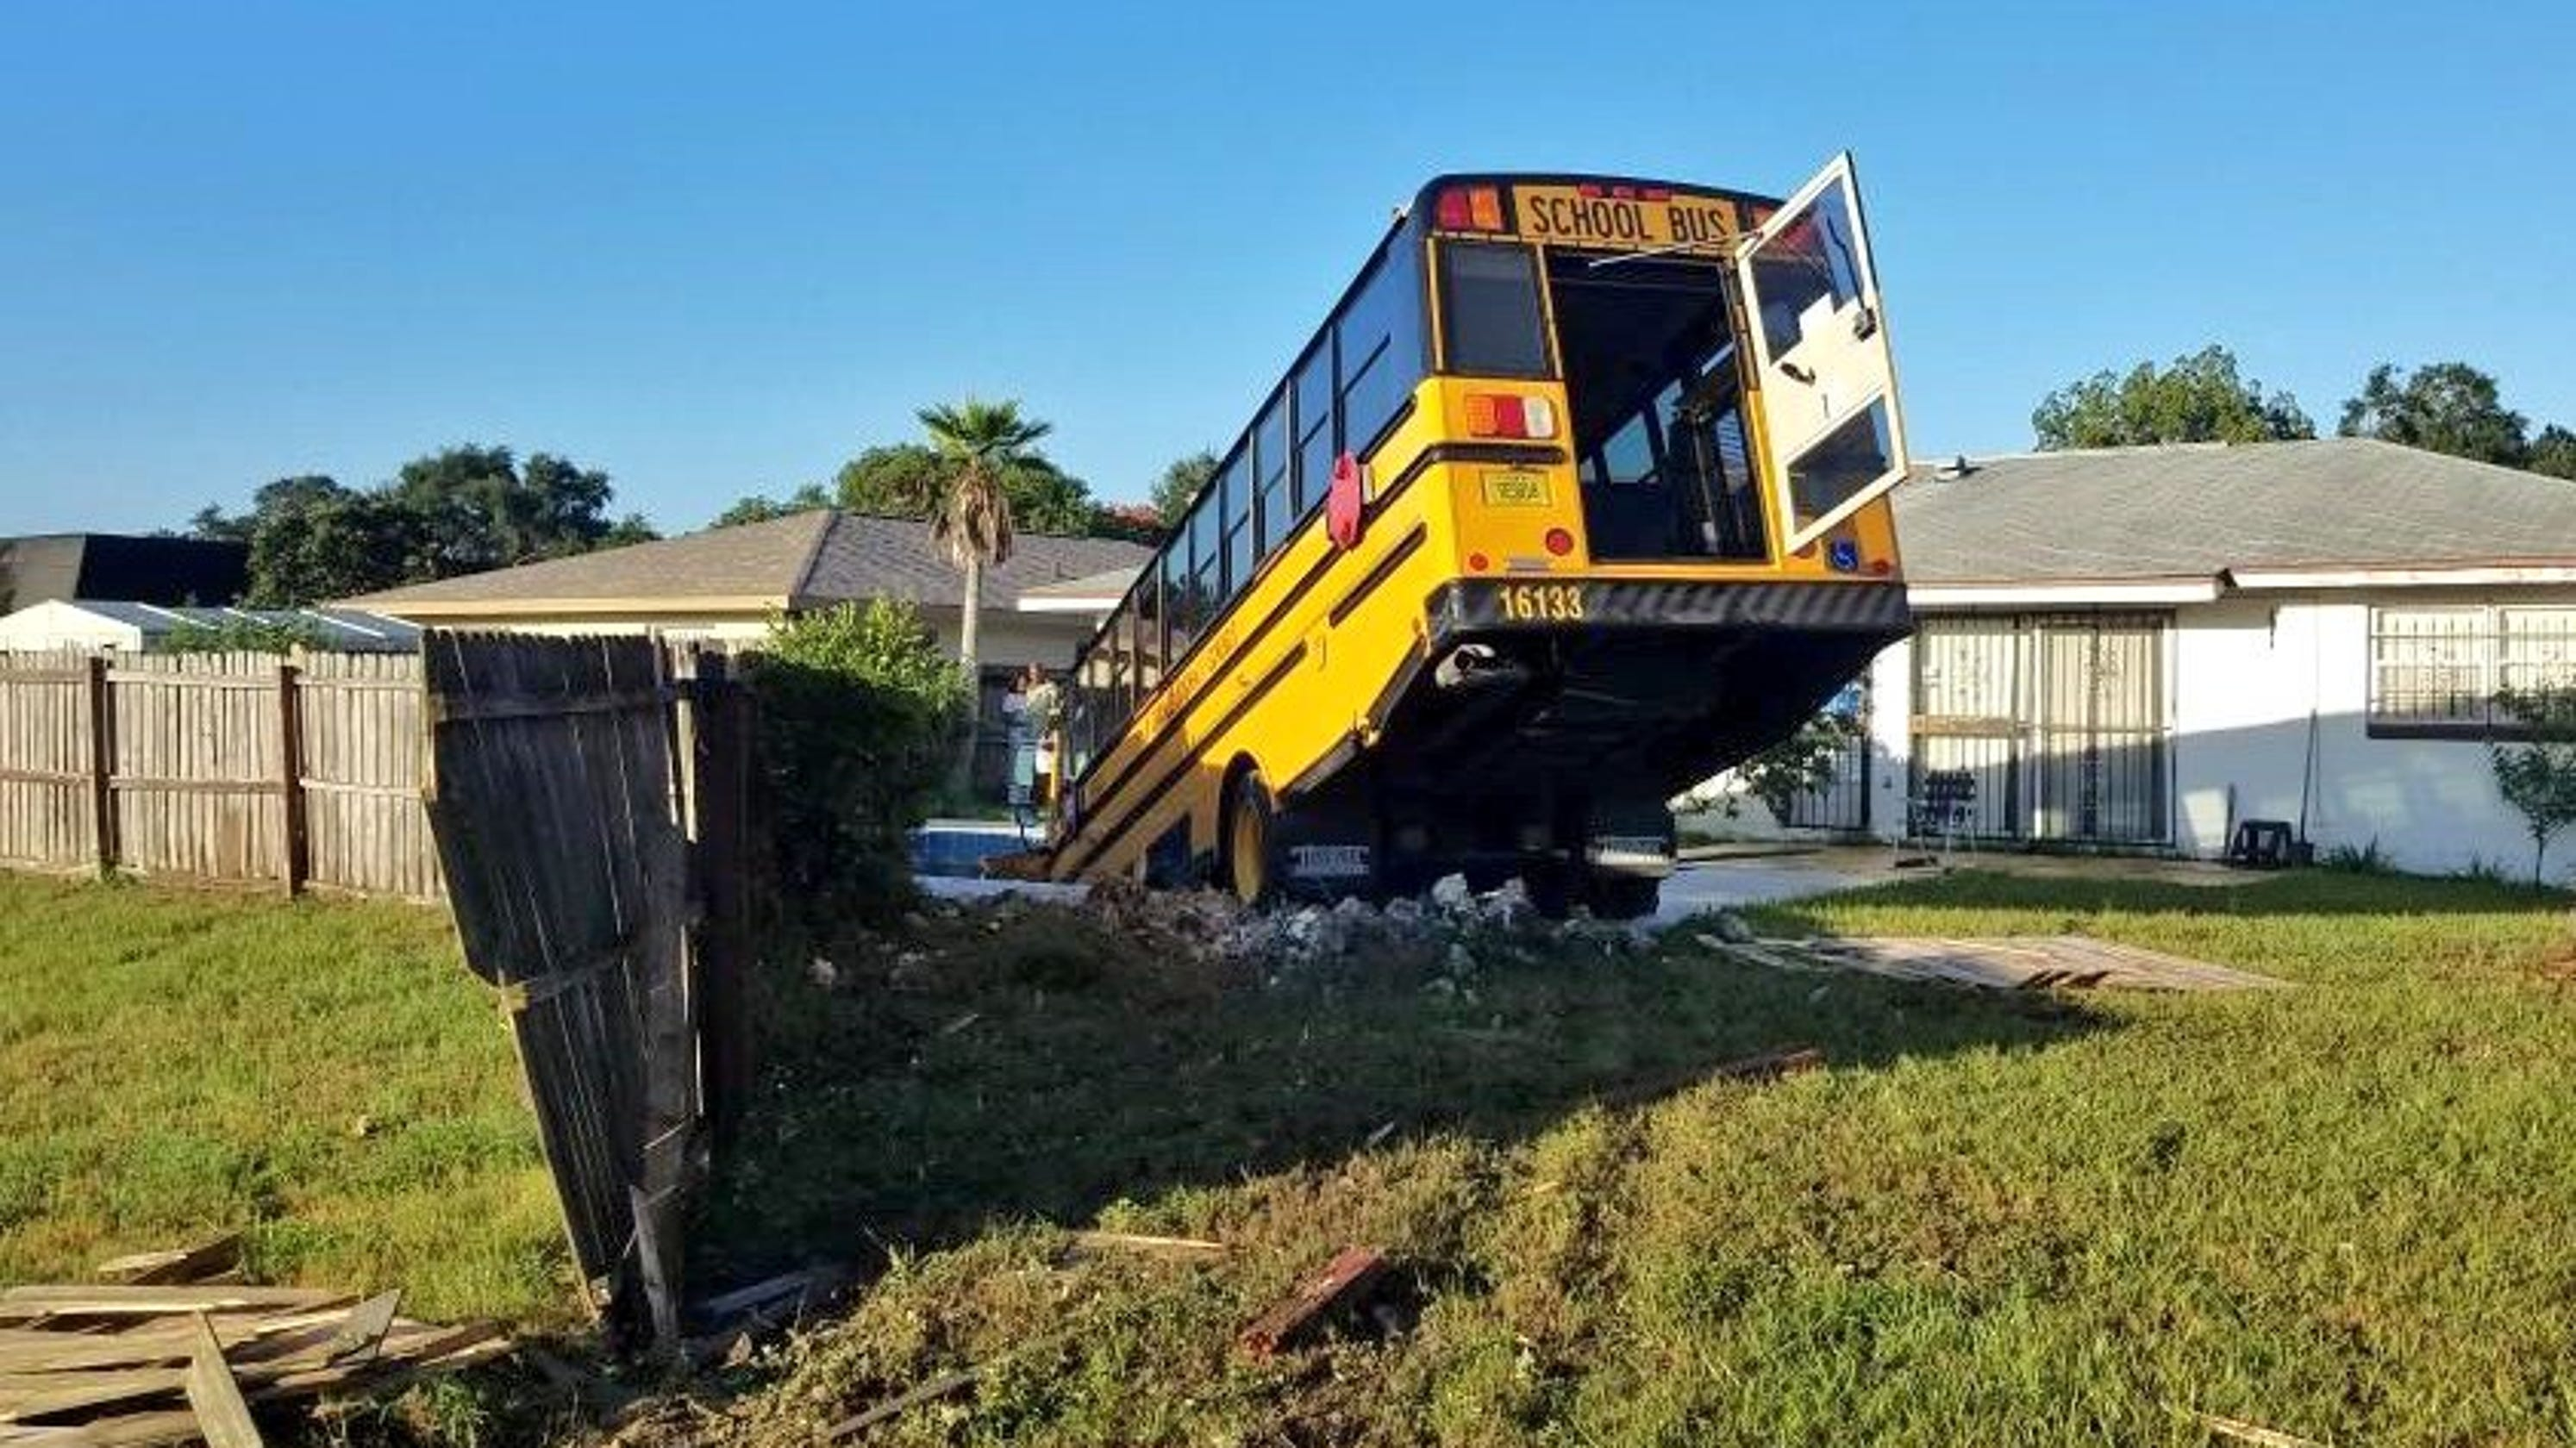 School bus crashes into swimming pool in pine hills florida - Above ground swimming pools orlando florida ...